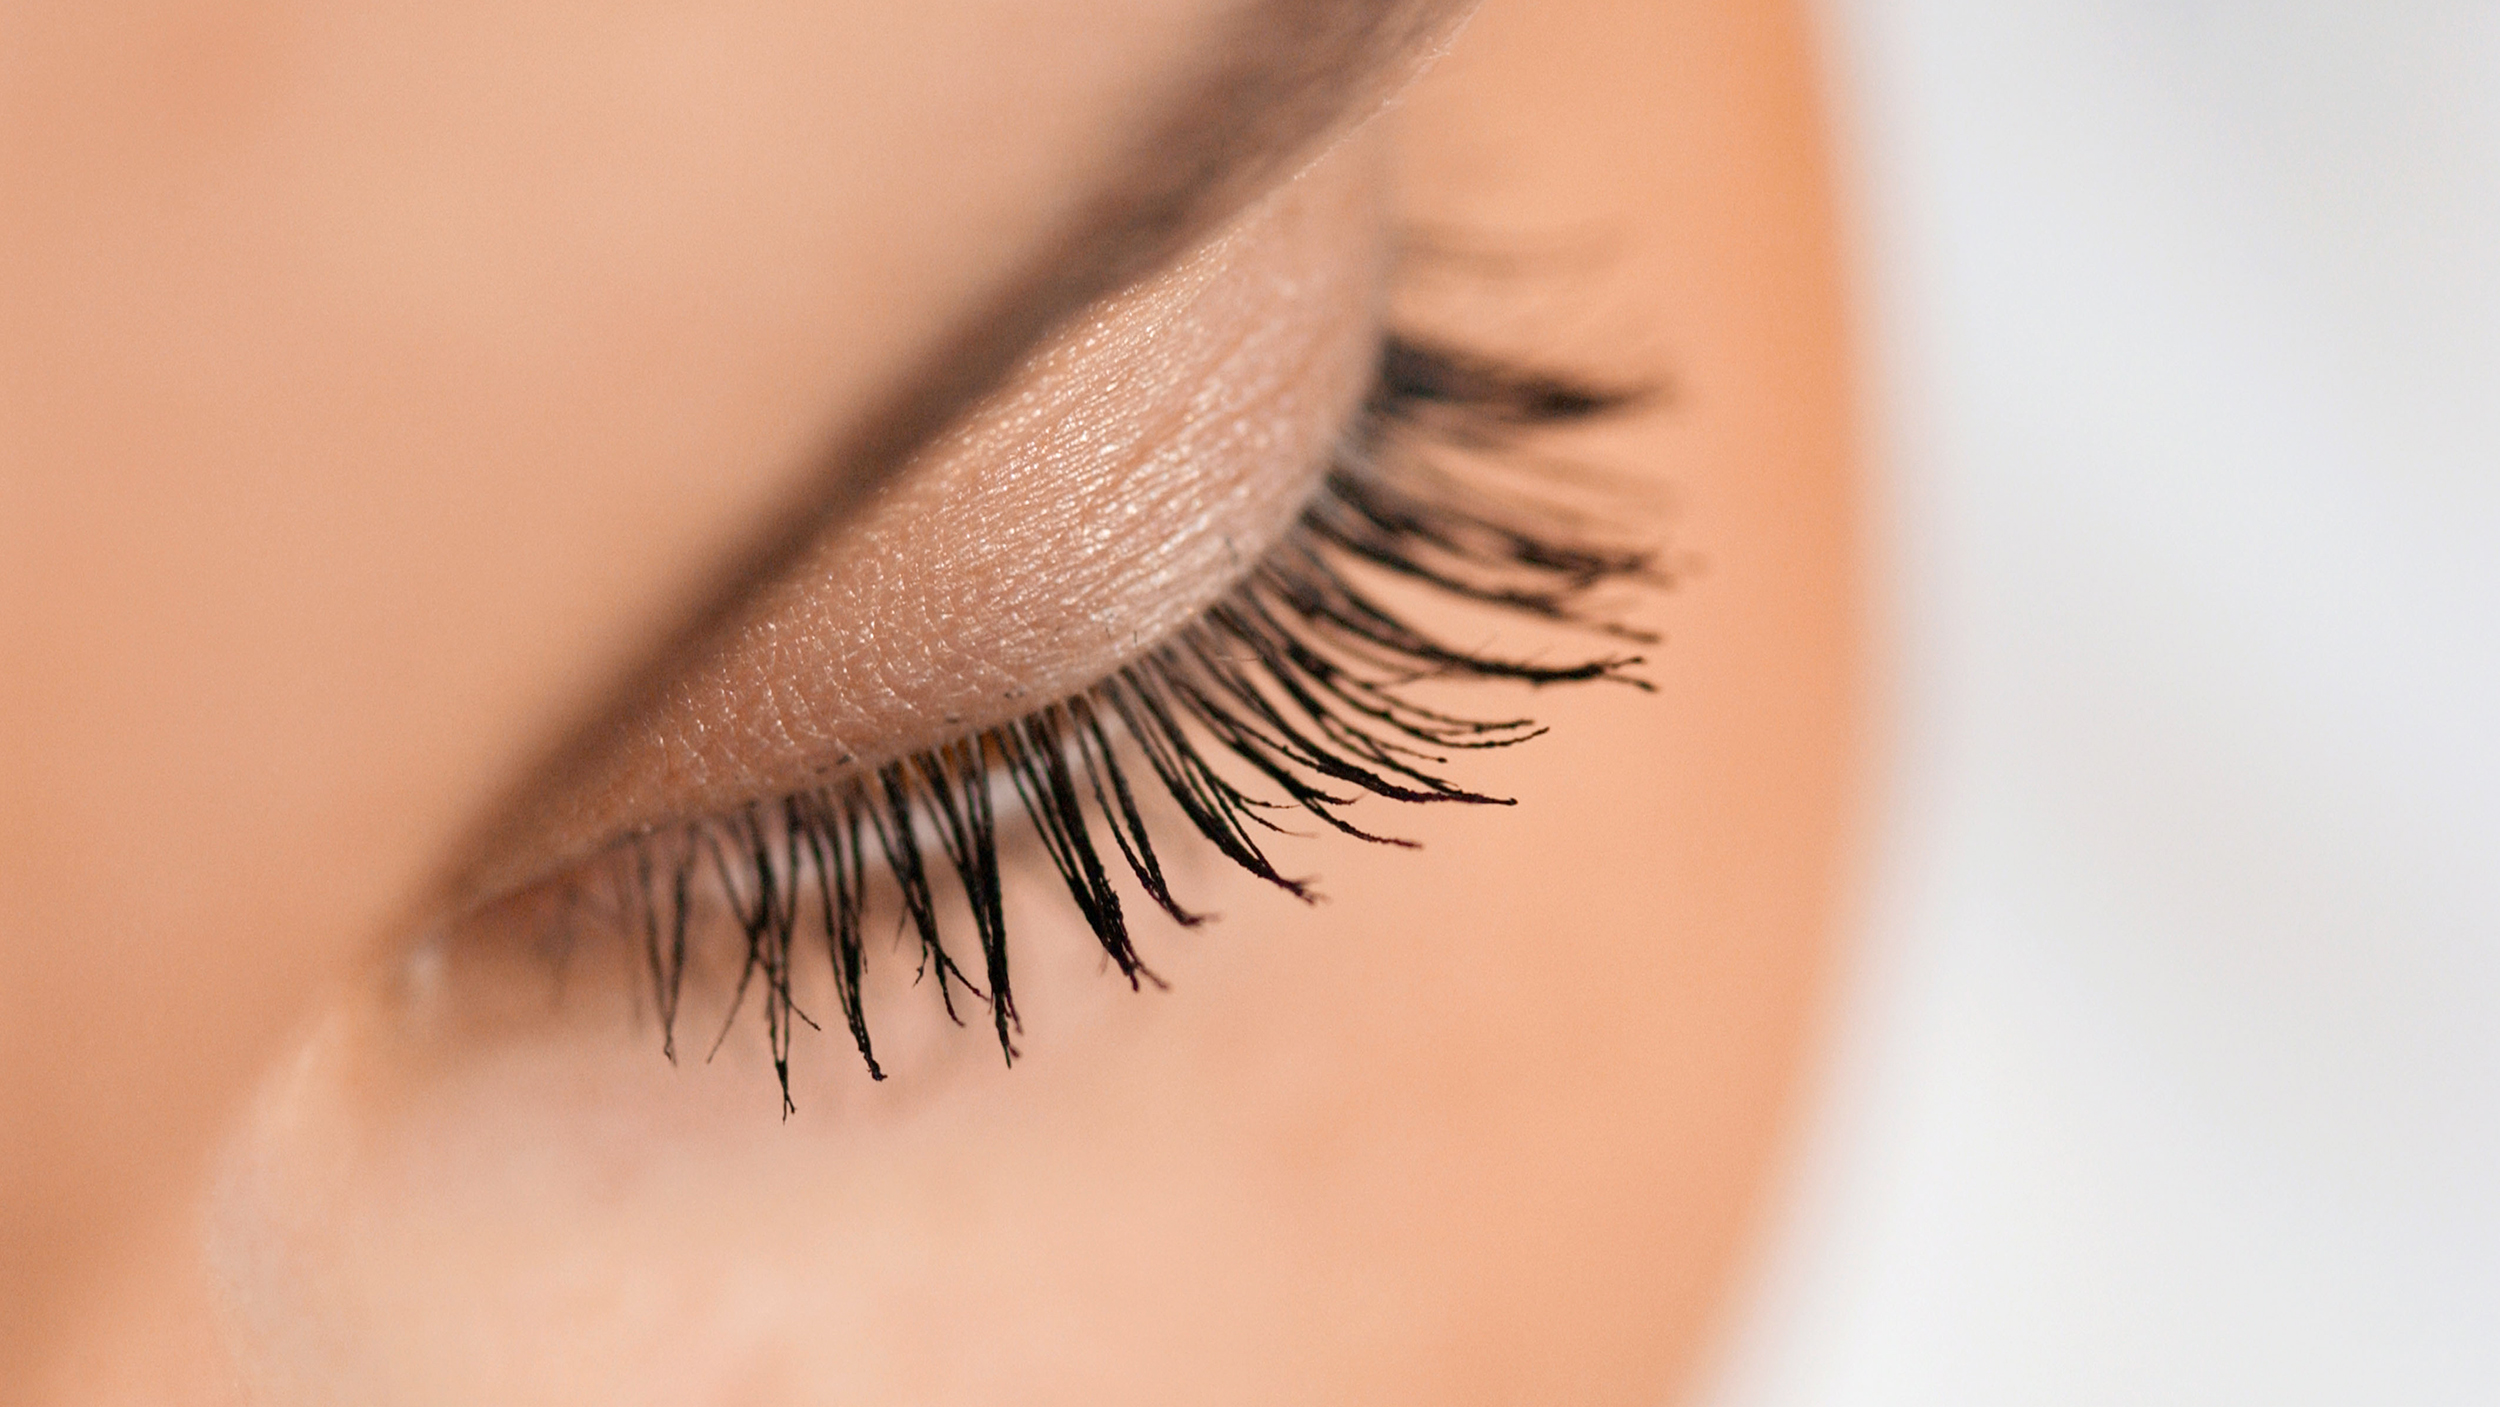 a859ecc6623 How to apply fake eye lashes: Glue-on, magnetic, semi-permanent